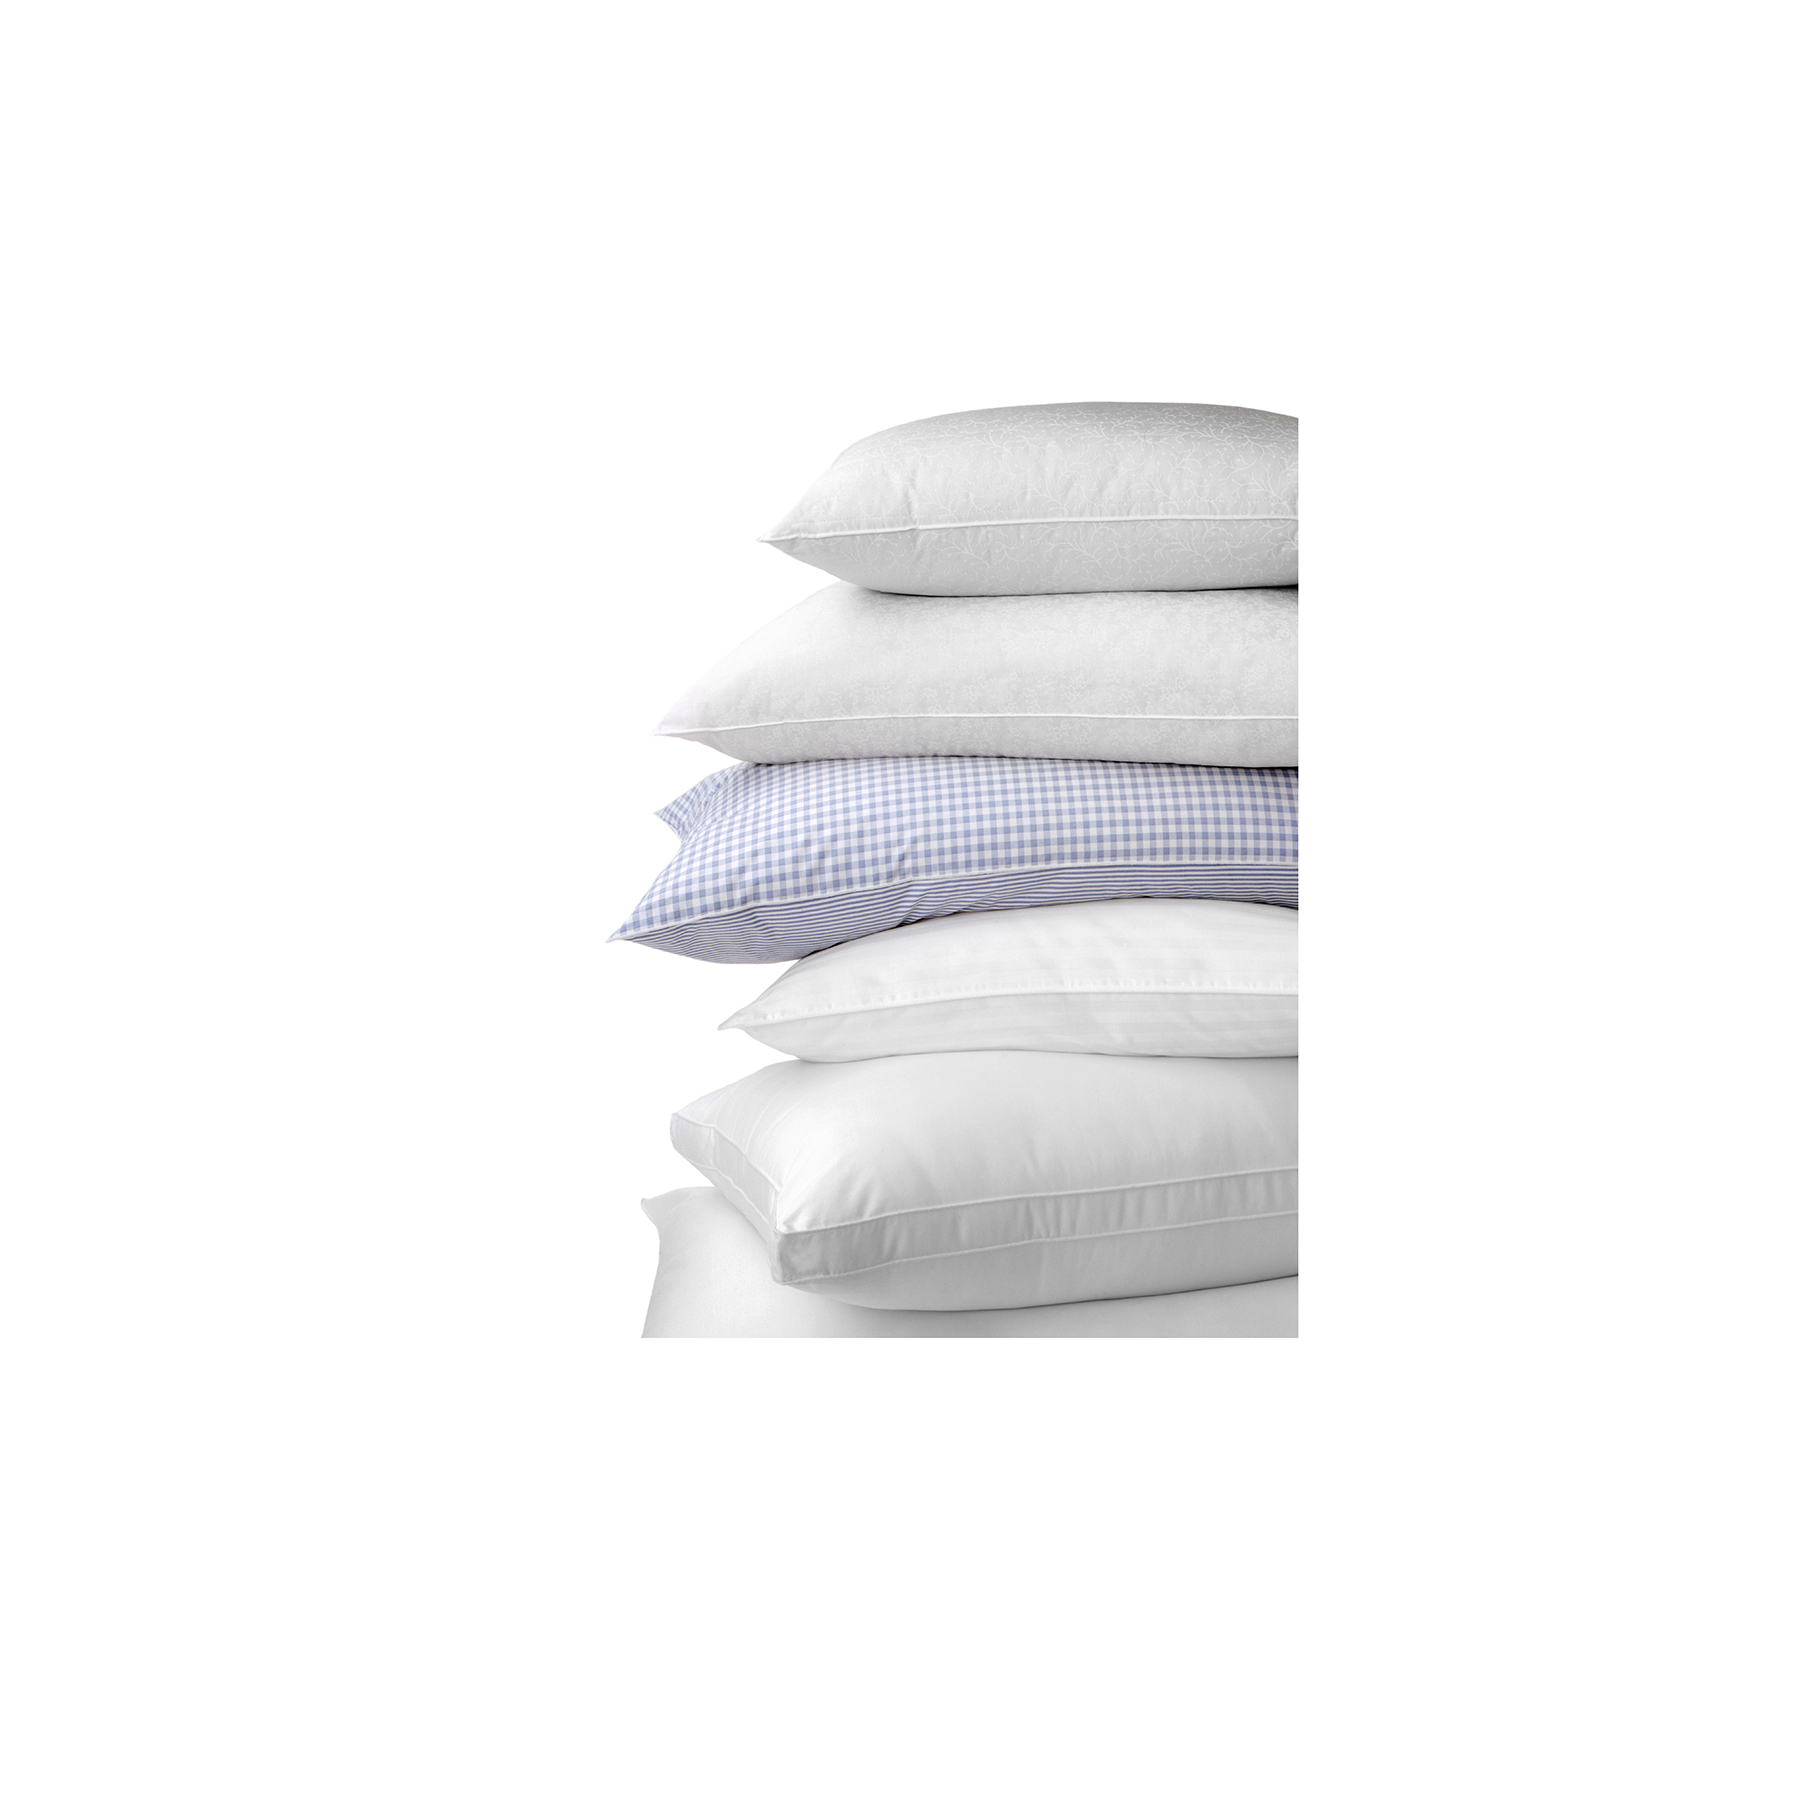 How to Revive Flat Pillows